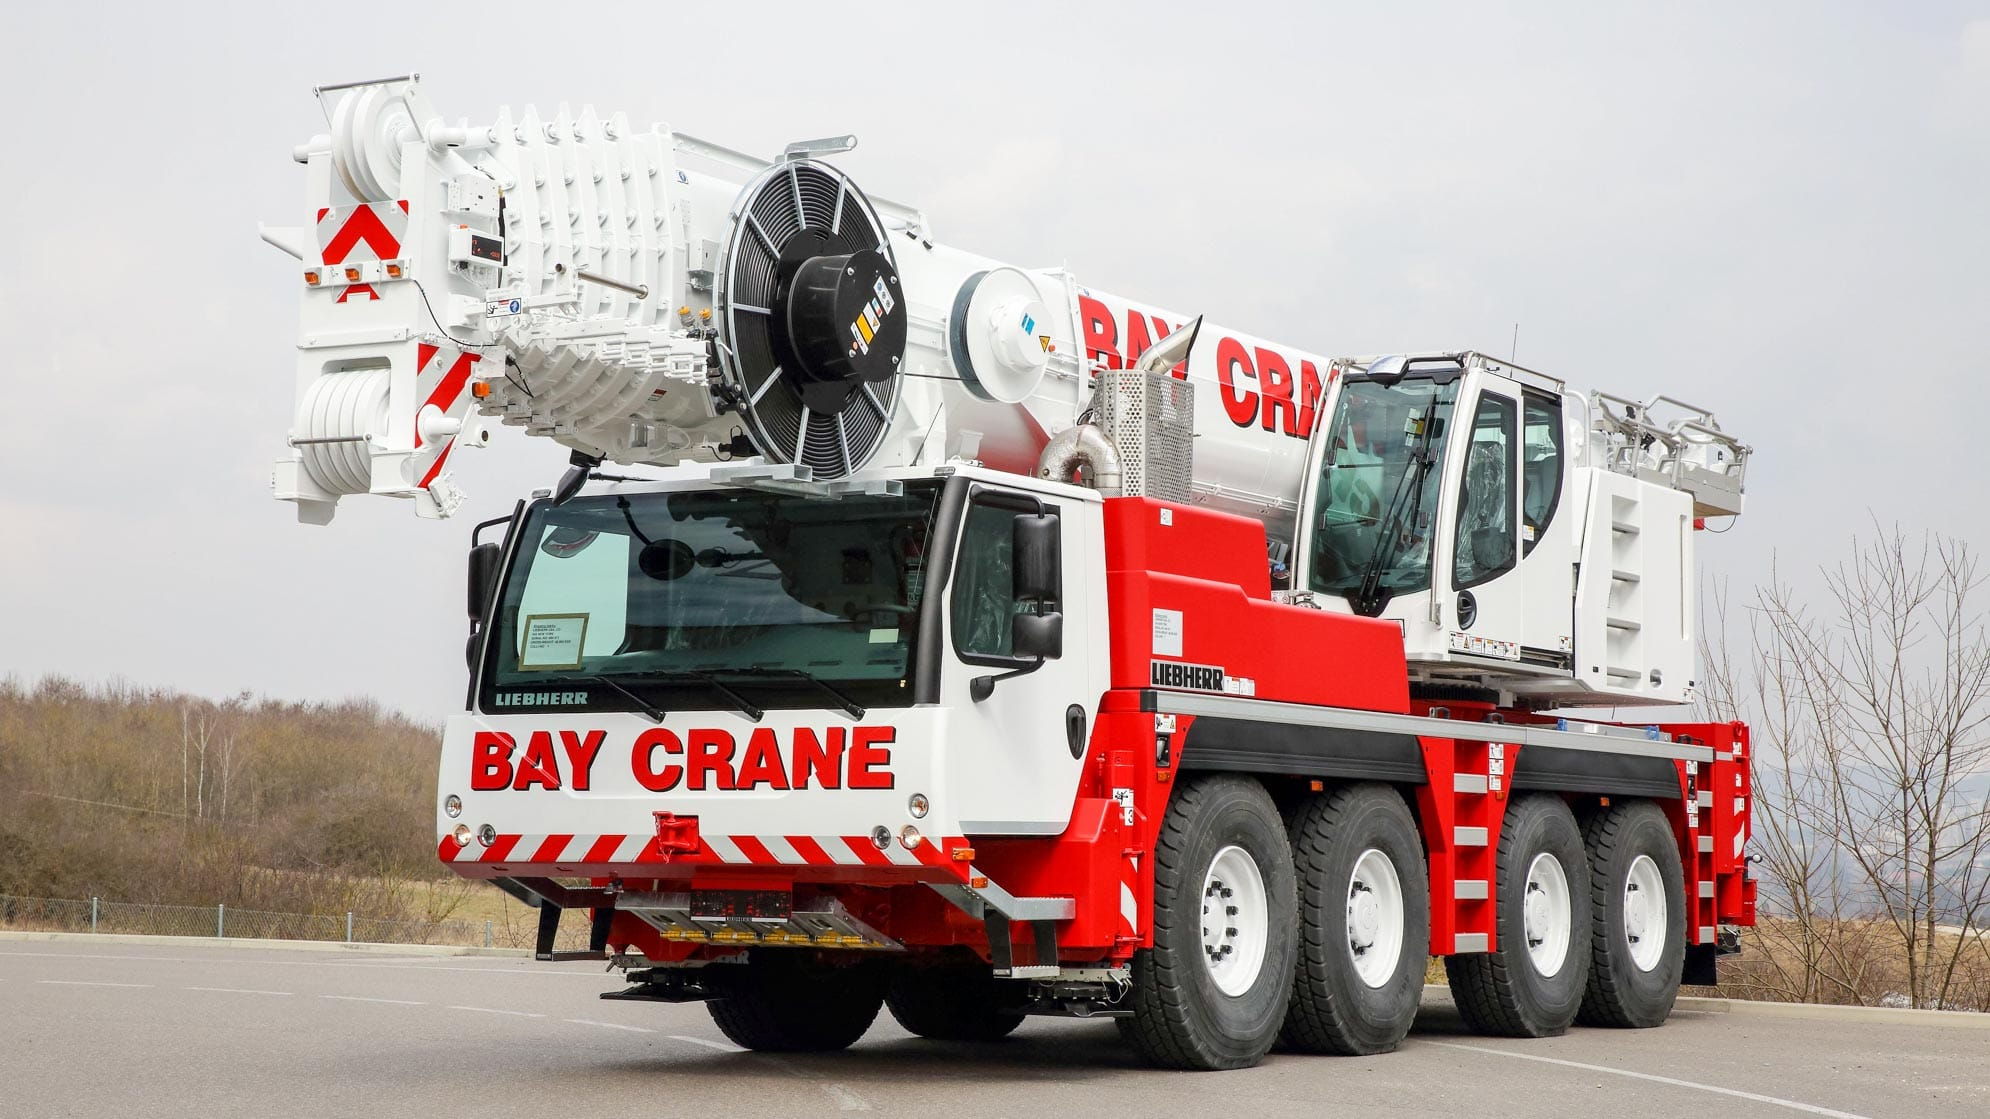 LTM 1100 all terrain crane with a hydraulic expandable